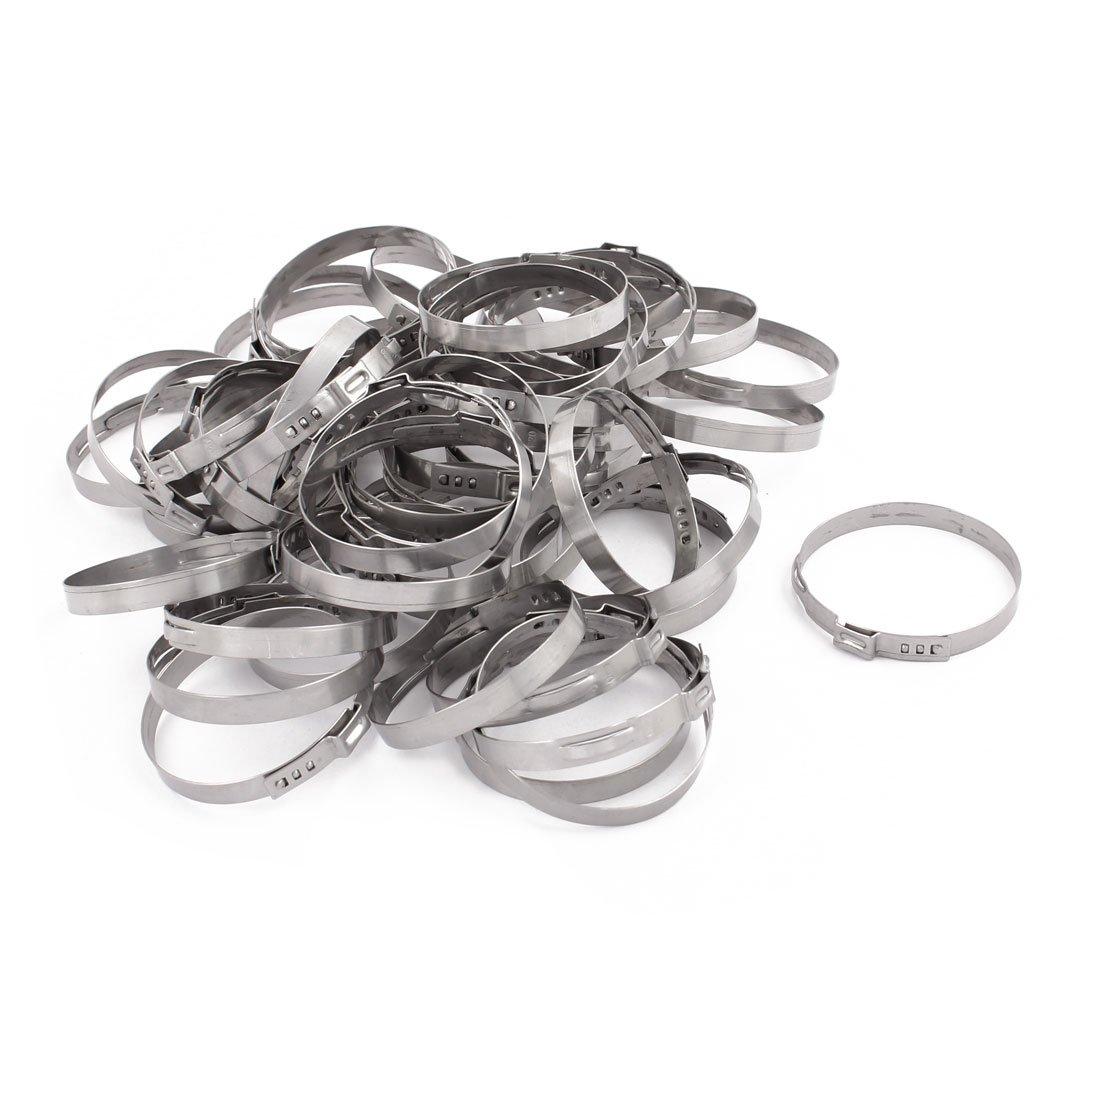 uxcell 48.8mm-52mm 304 Stainless Steel Adjustable Tube Hose Clamps Silver Tone 50pcs